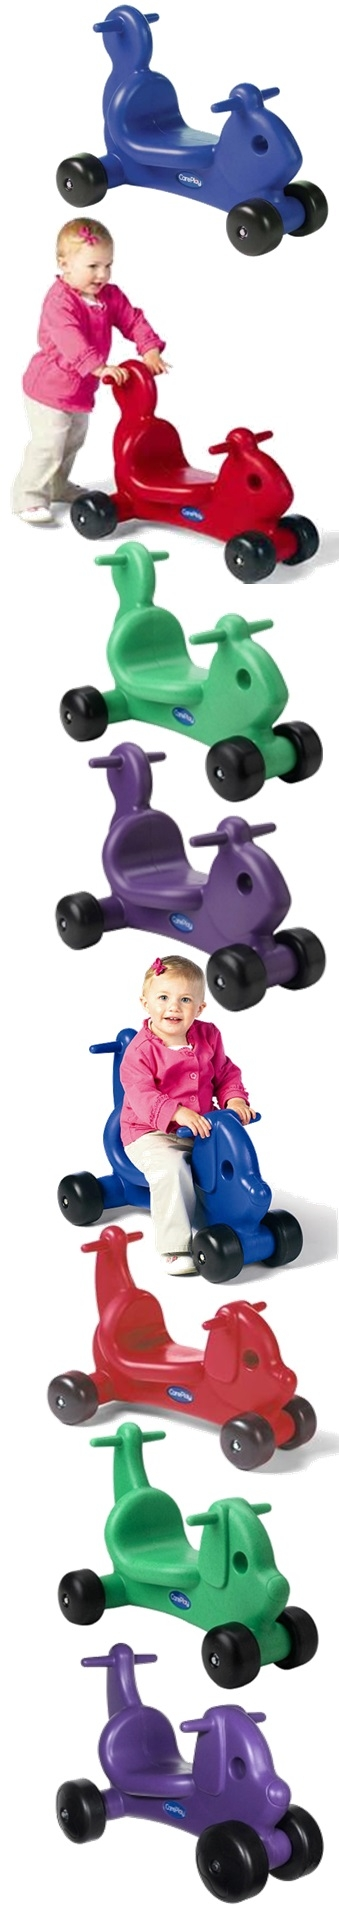 CarePlay® Ride-Ons